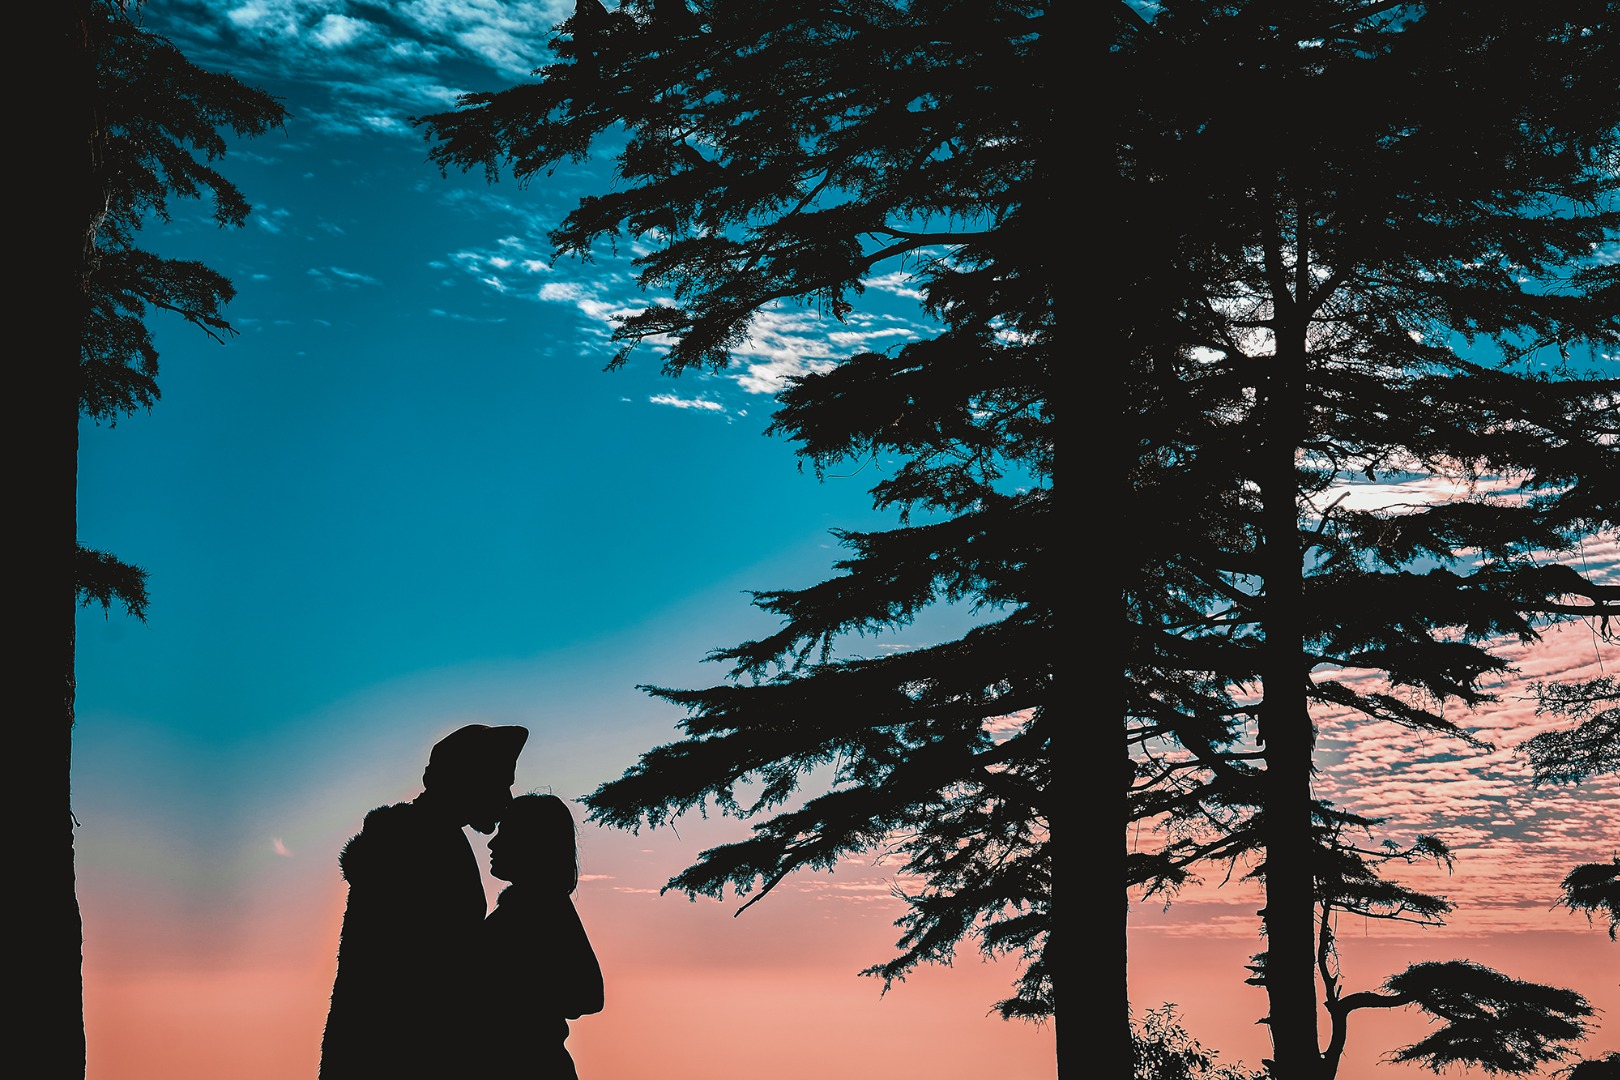 silhouette photograph of the couple